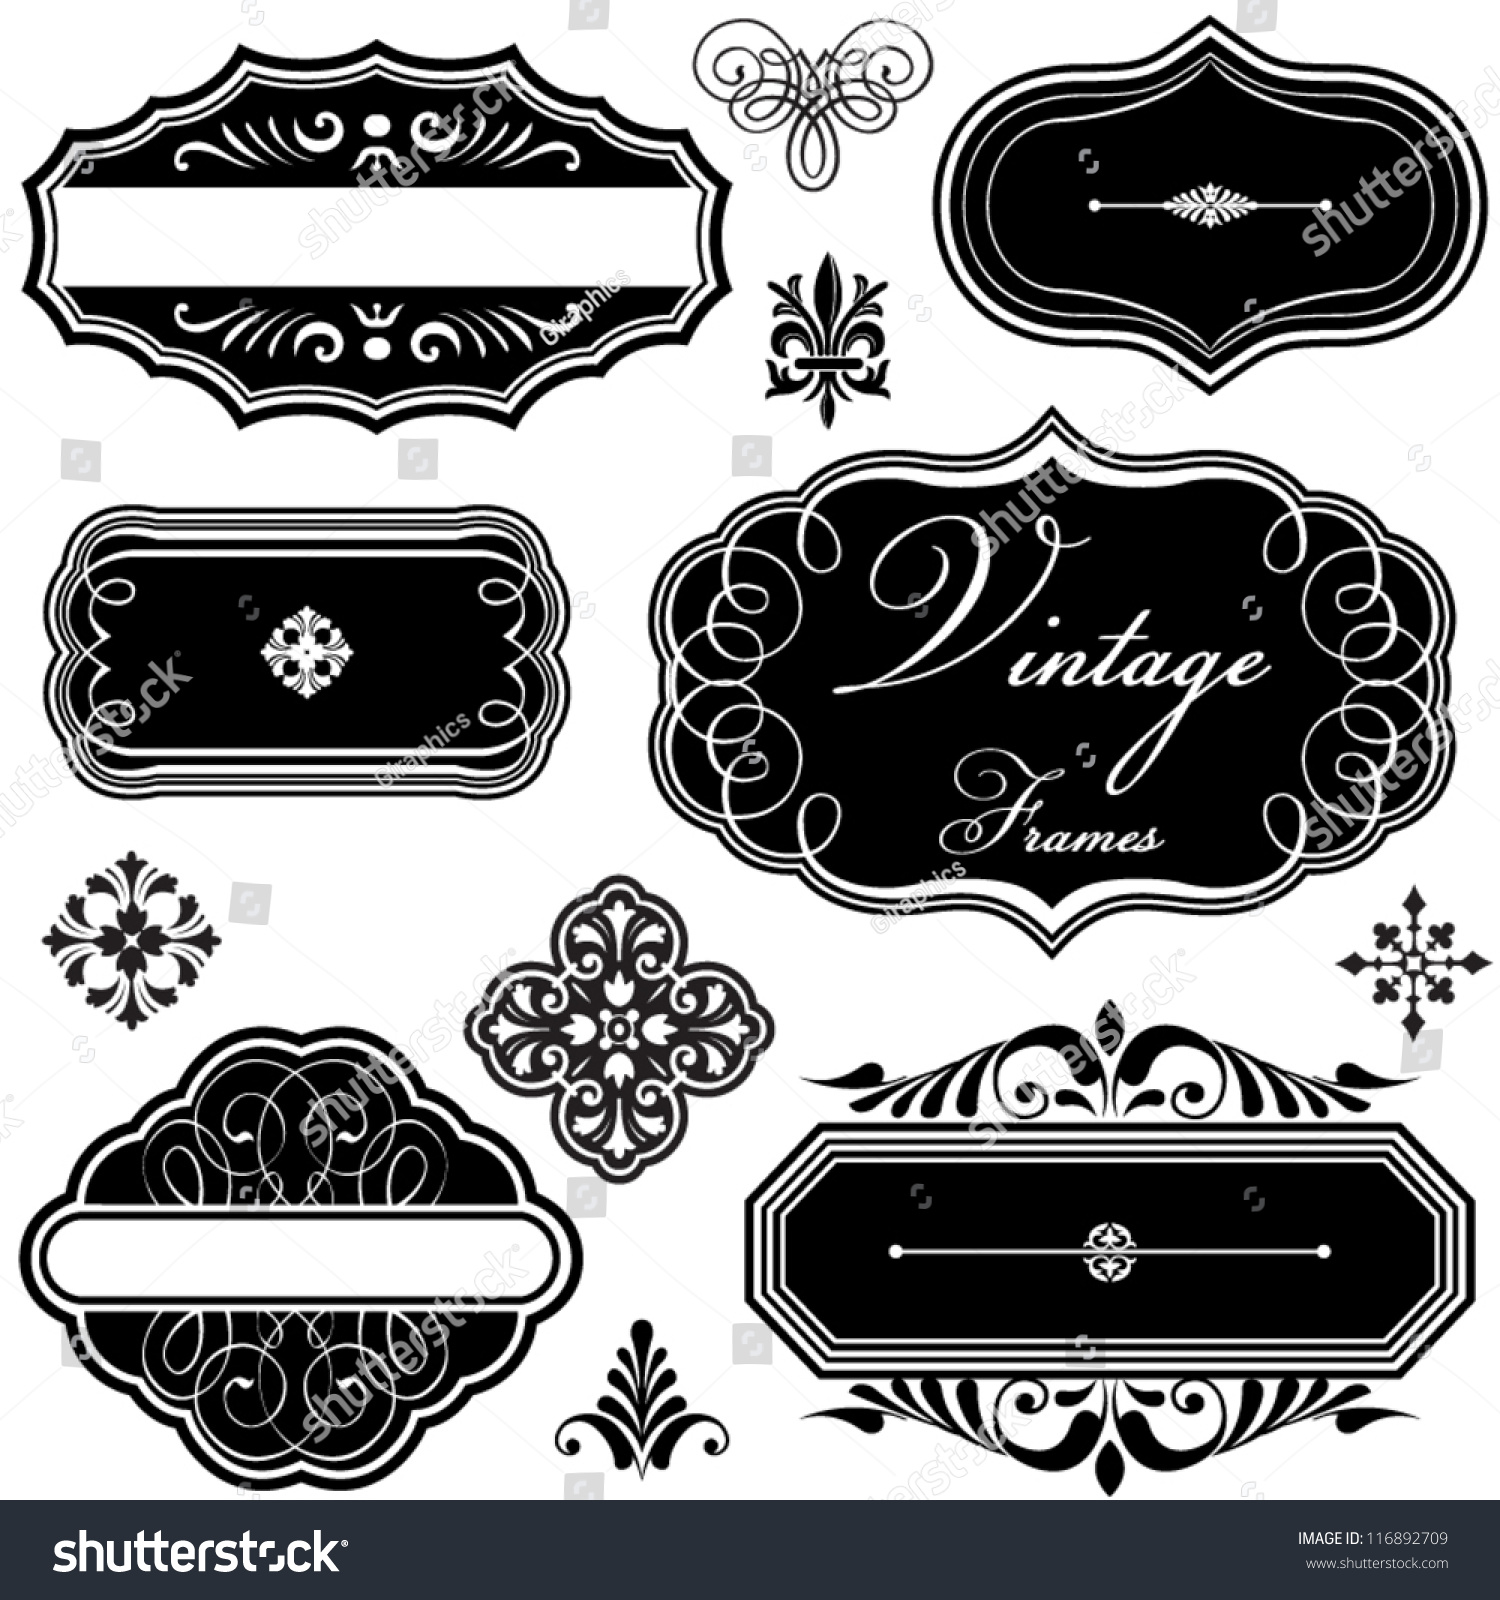 Vintage style ornaments - Fancy Vintage Frames And Ornaments Set Of Vintage Style Frames And Scroll Ornaments